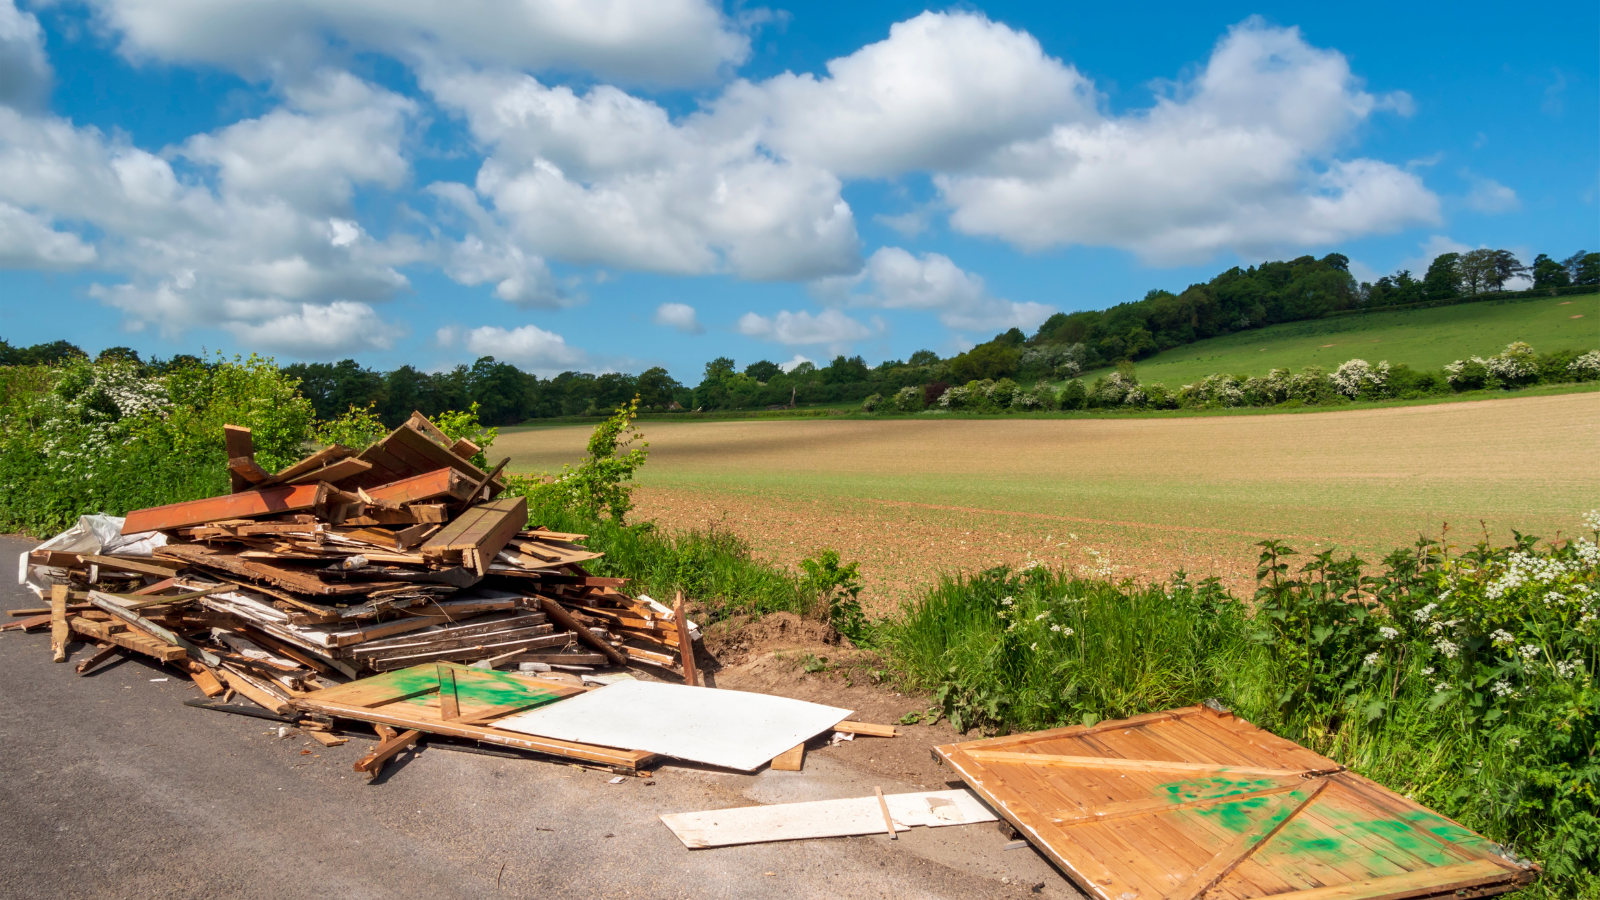 Fly-tipped waste in English countryside